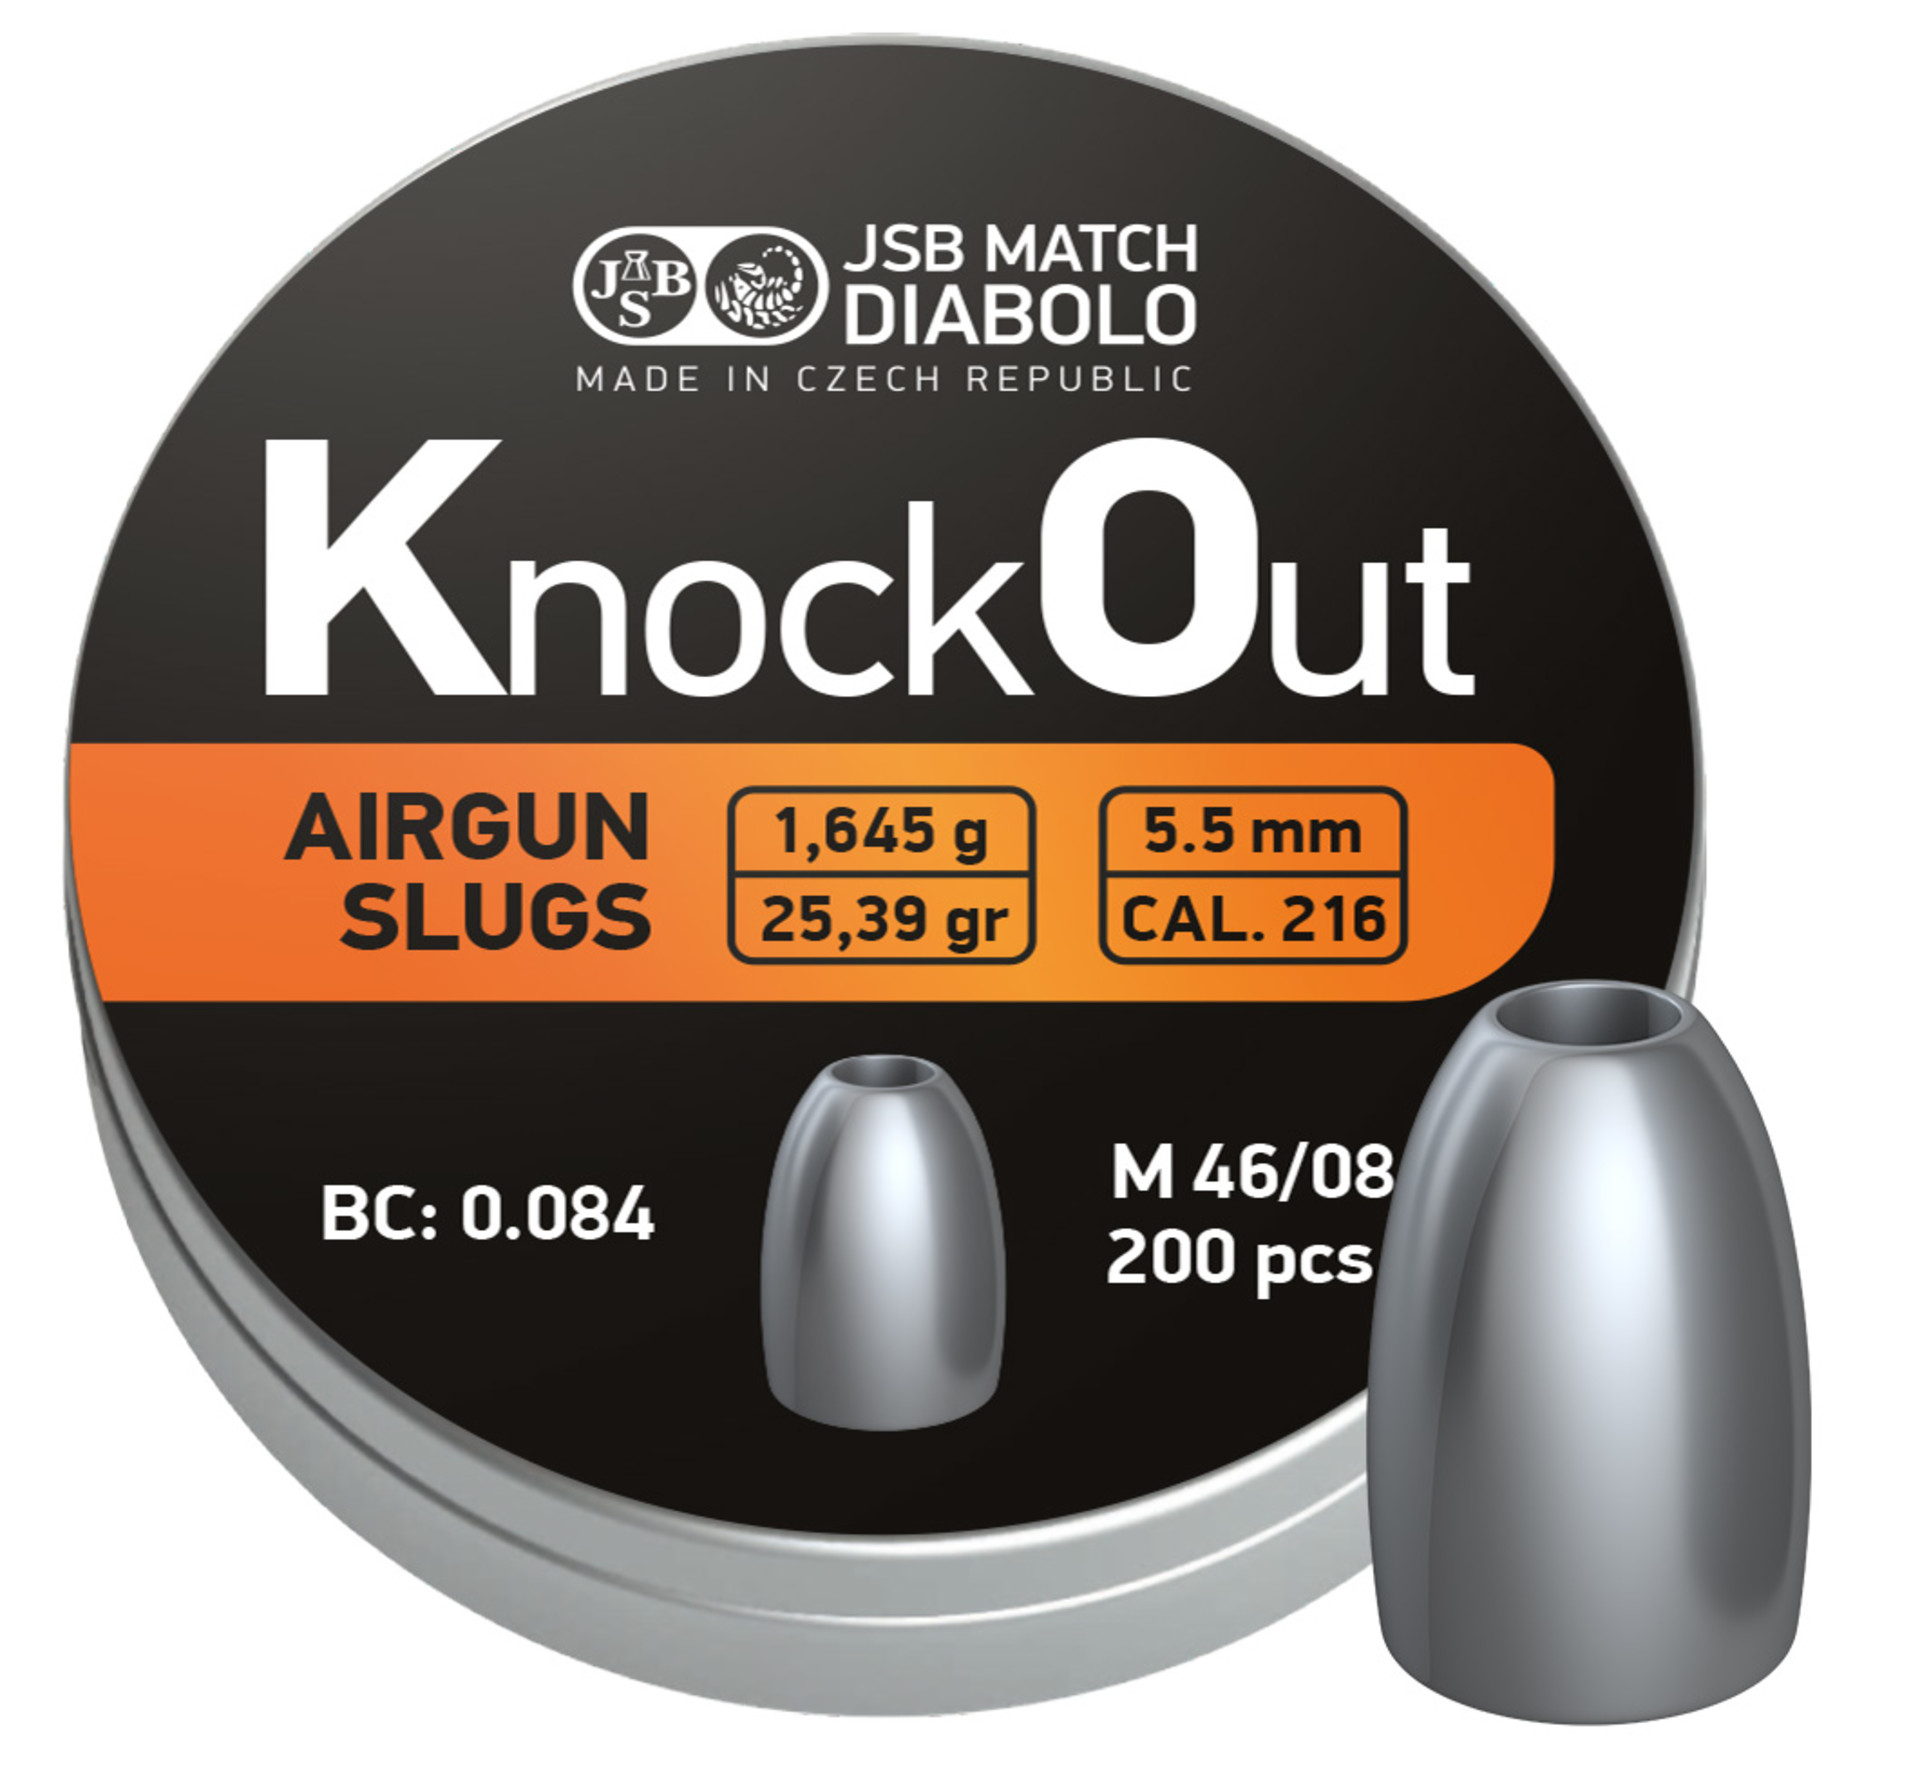 Diabolo JSB KnockOut Slugs .216 200ks cal.5,5mm